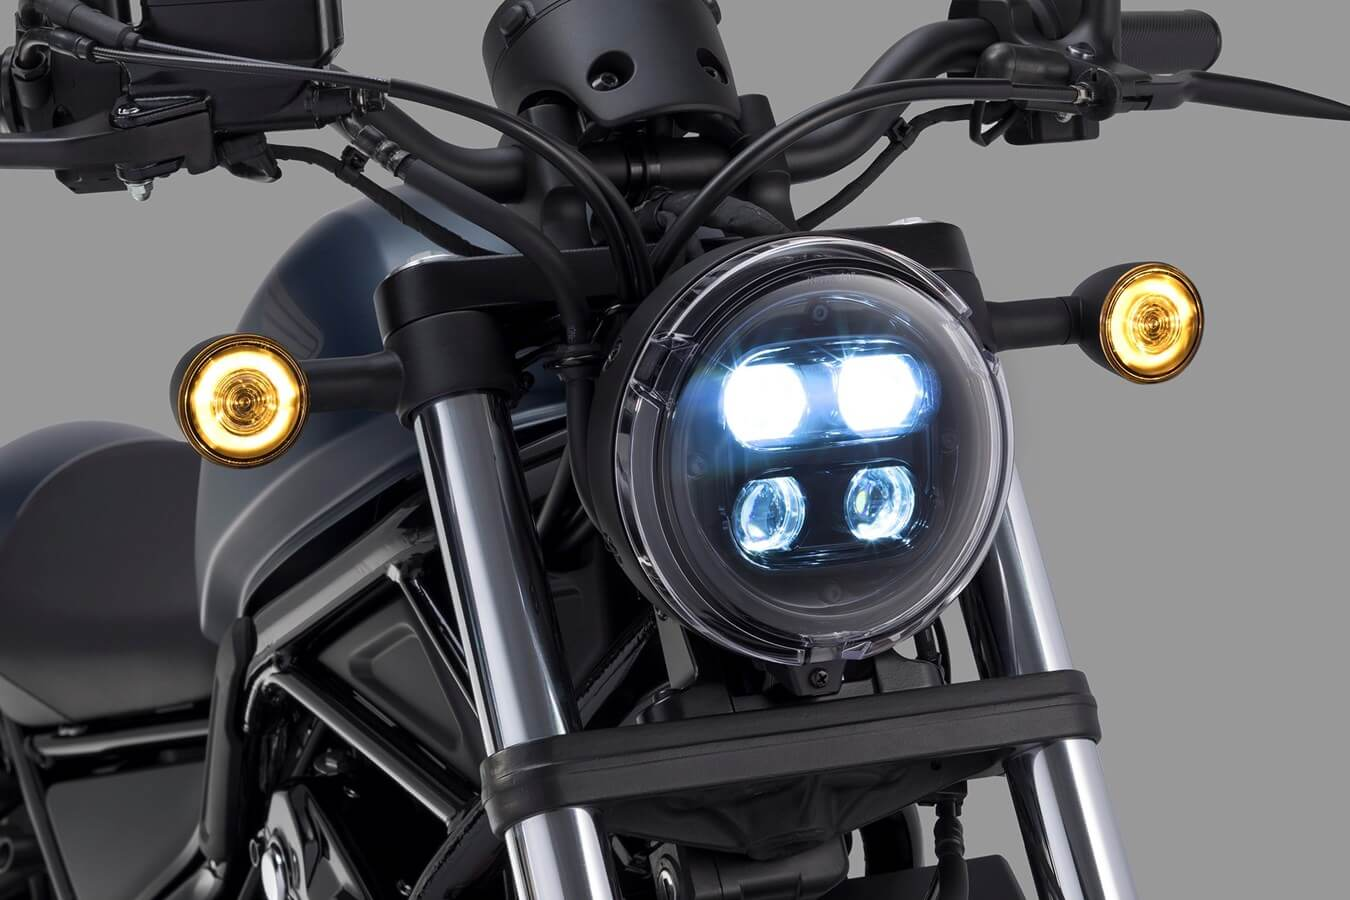 Headlight Honda Rebel 500 2020 Low Beam